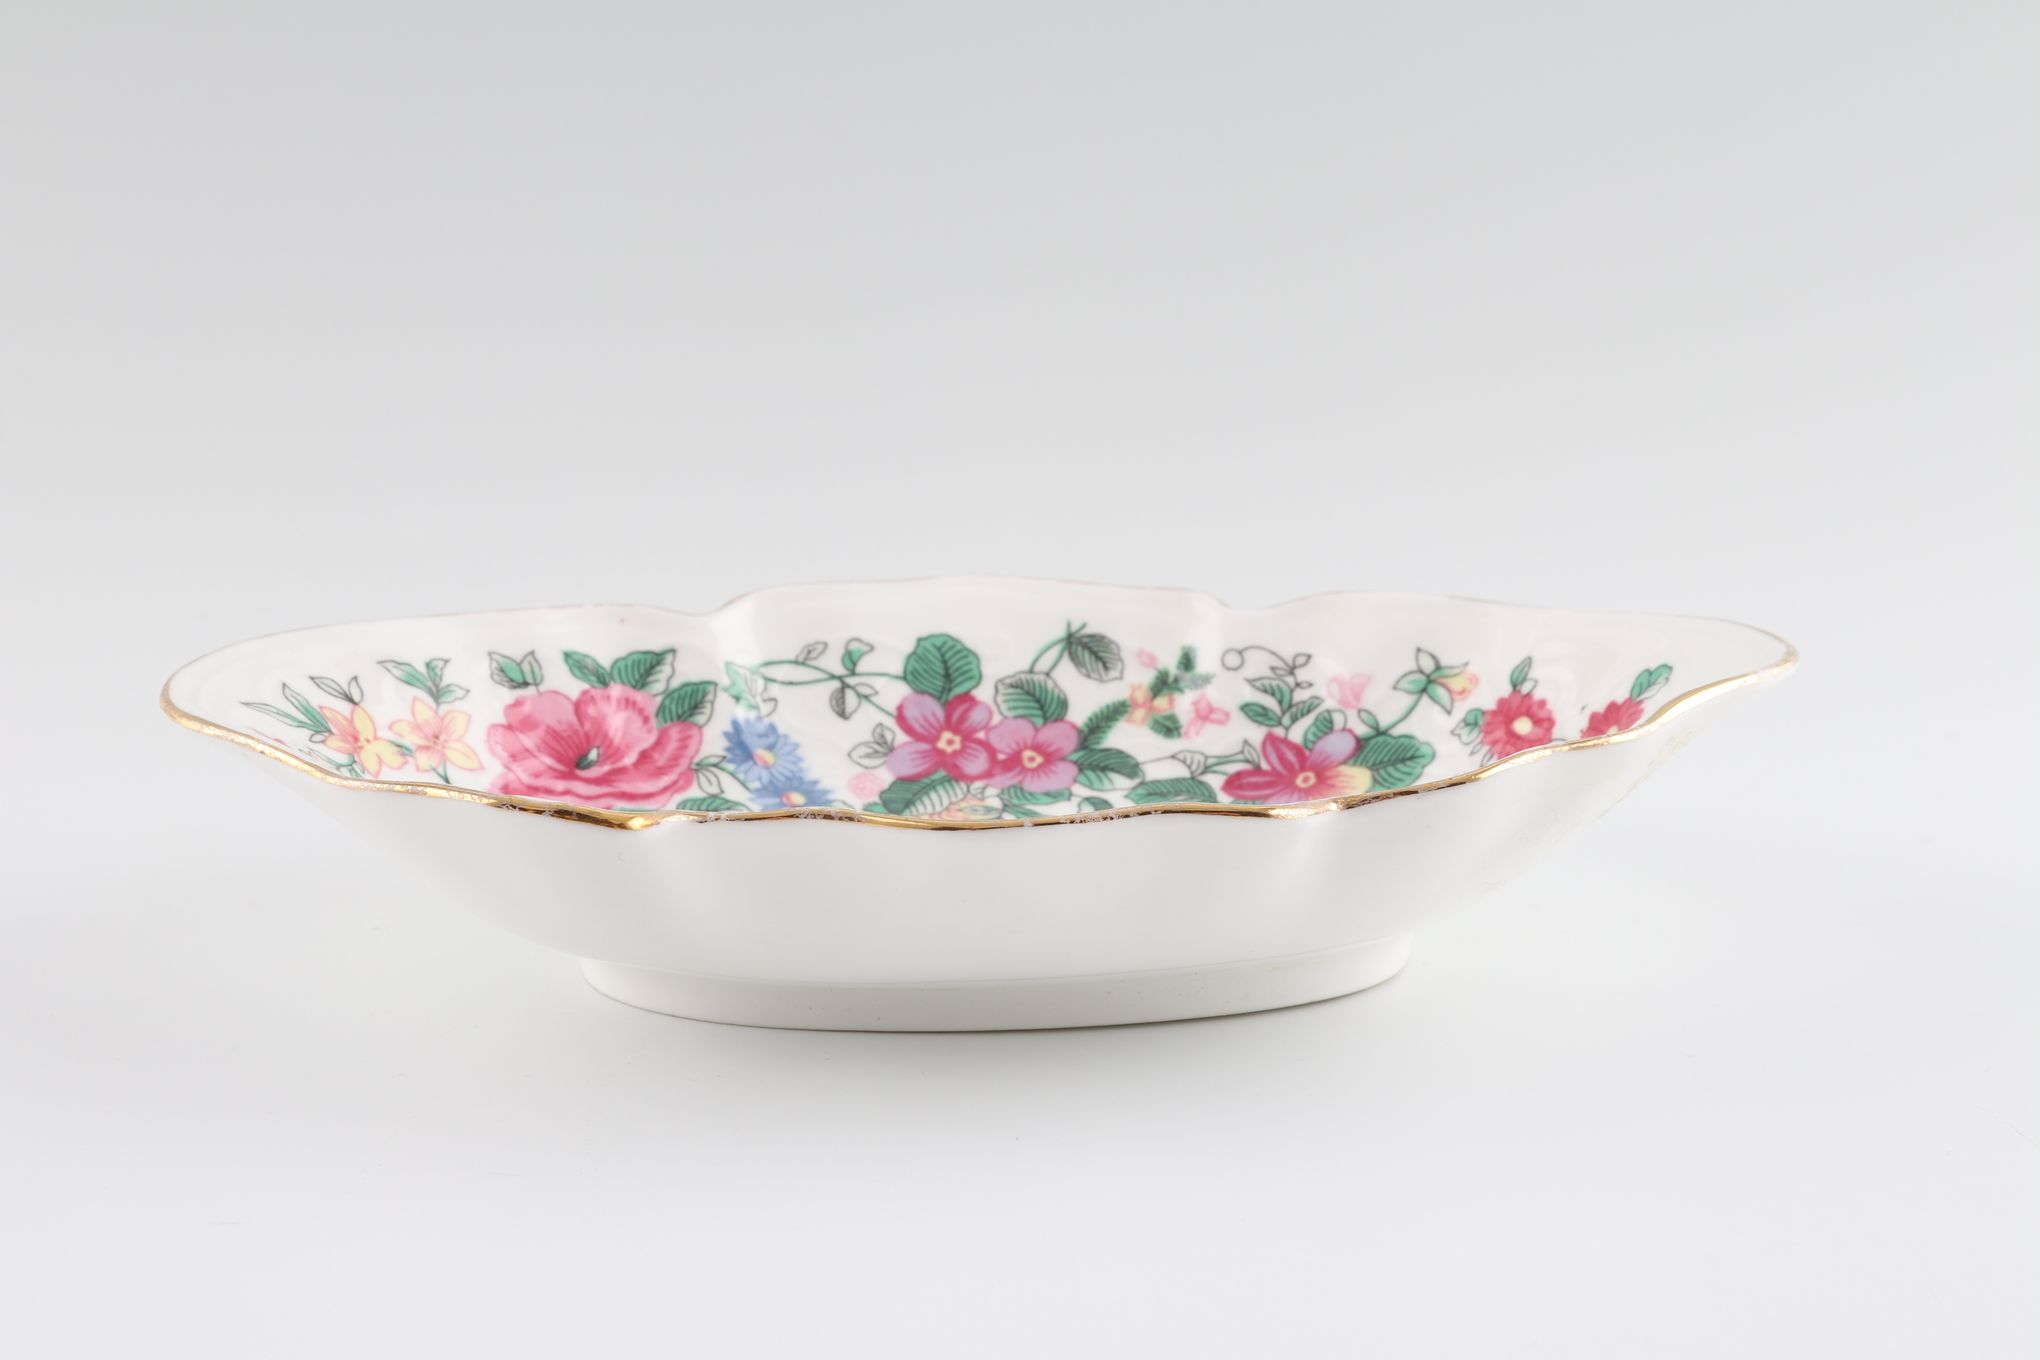 """Crown Staffordshire Thousand Flowers Serving Dish Oval - Fluted 6 3/4 x 4 1/2"""" thumb 2"""